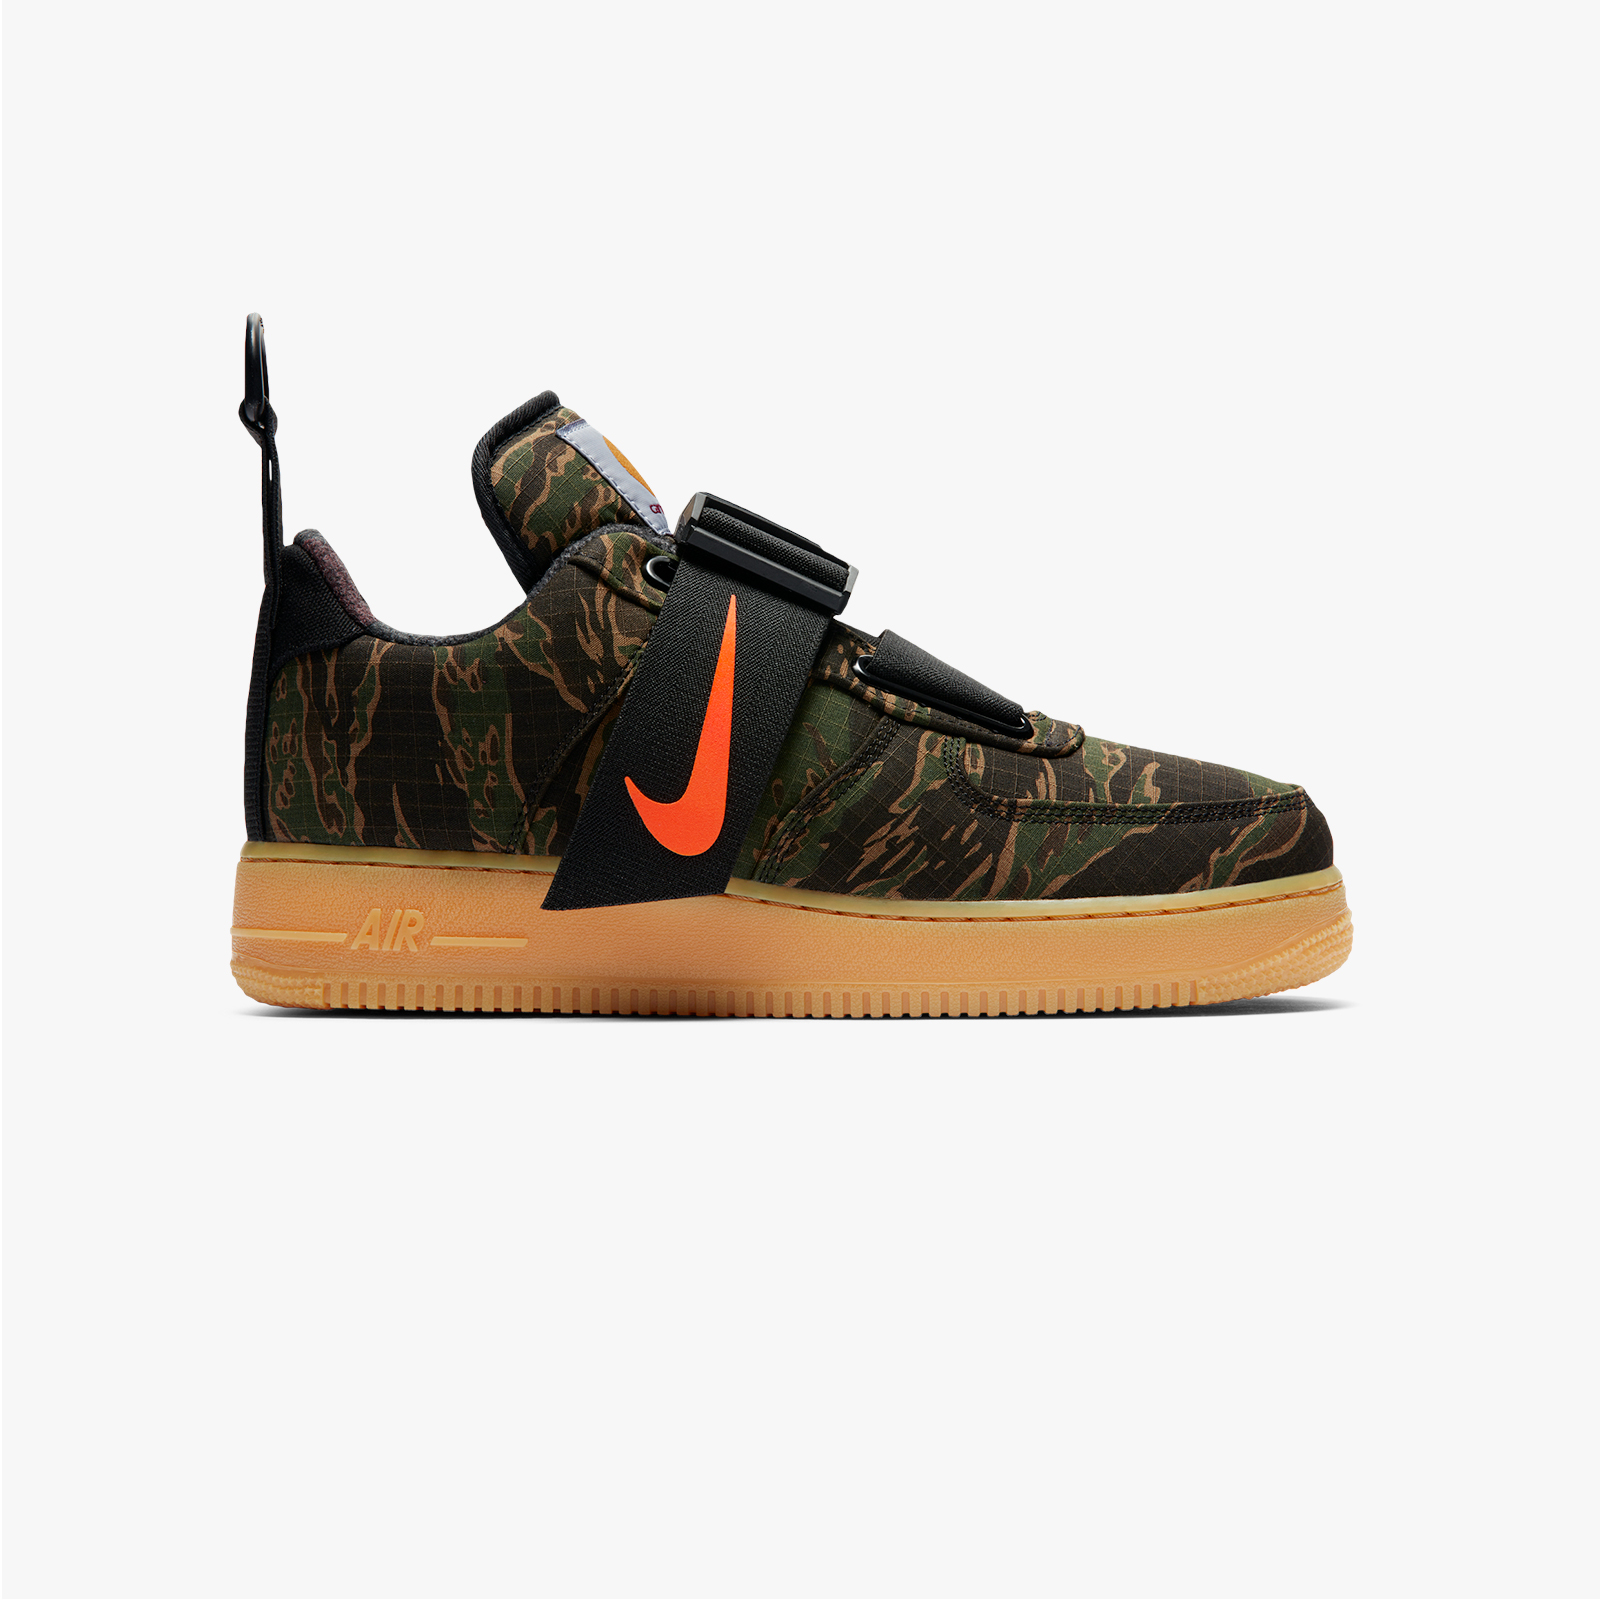 Nike Air Force 1 Utility Low Premium x Carhartt WIP Av4112